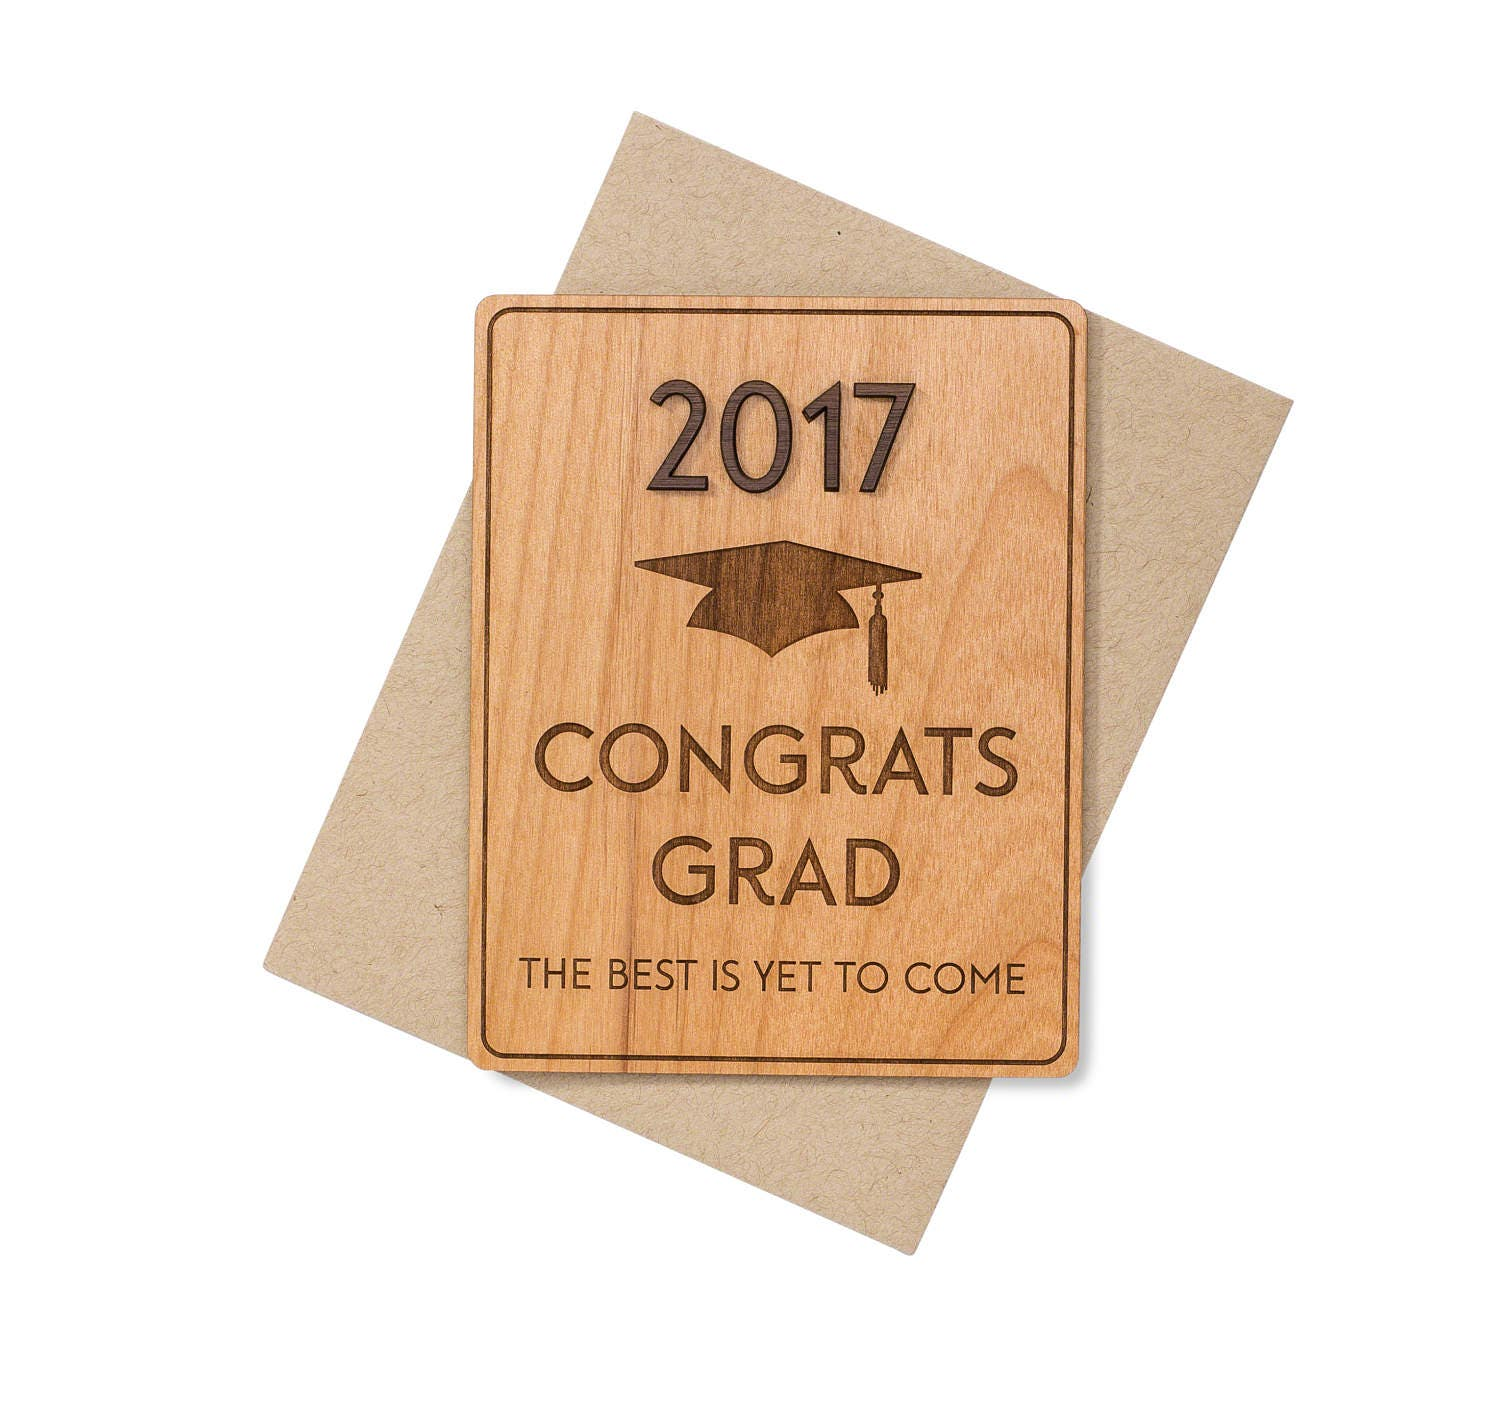 Wedding Gift For High School Friend : ... gifts etsy class graduation gift college card for him her high school